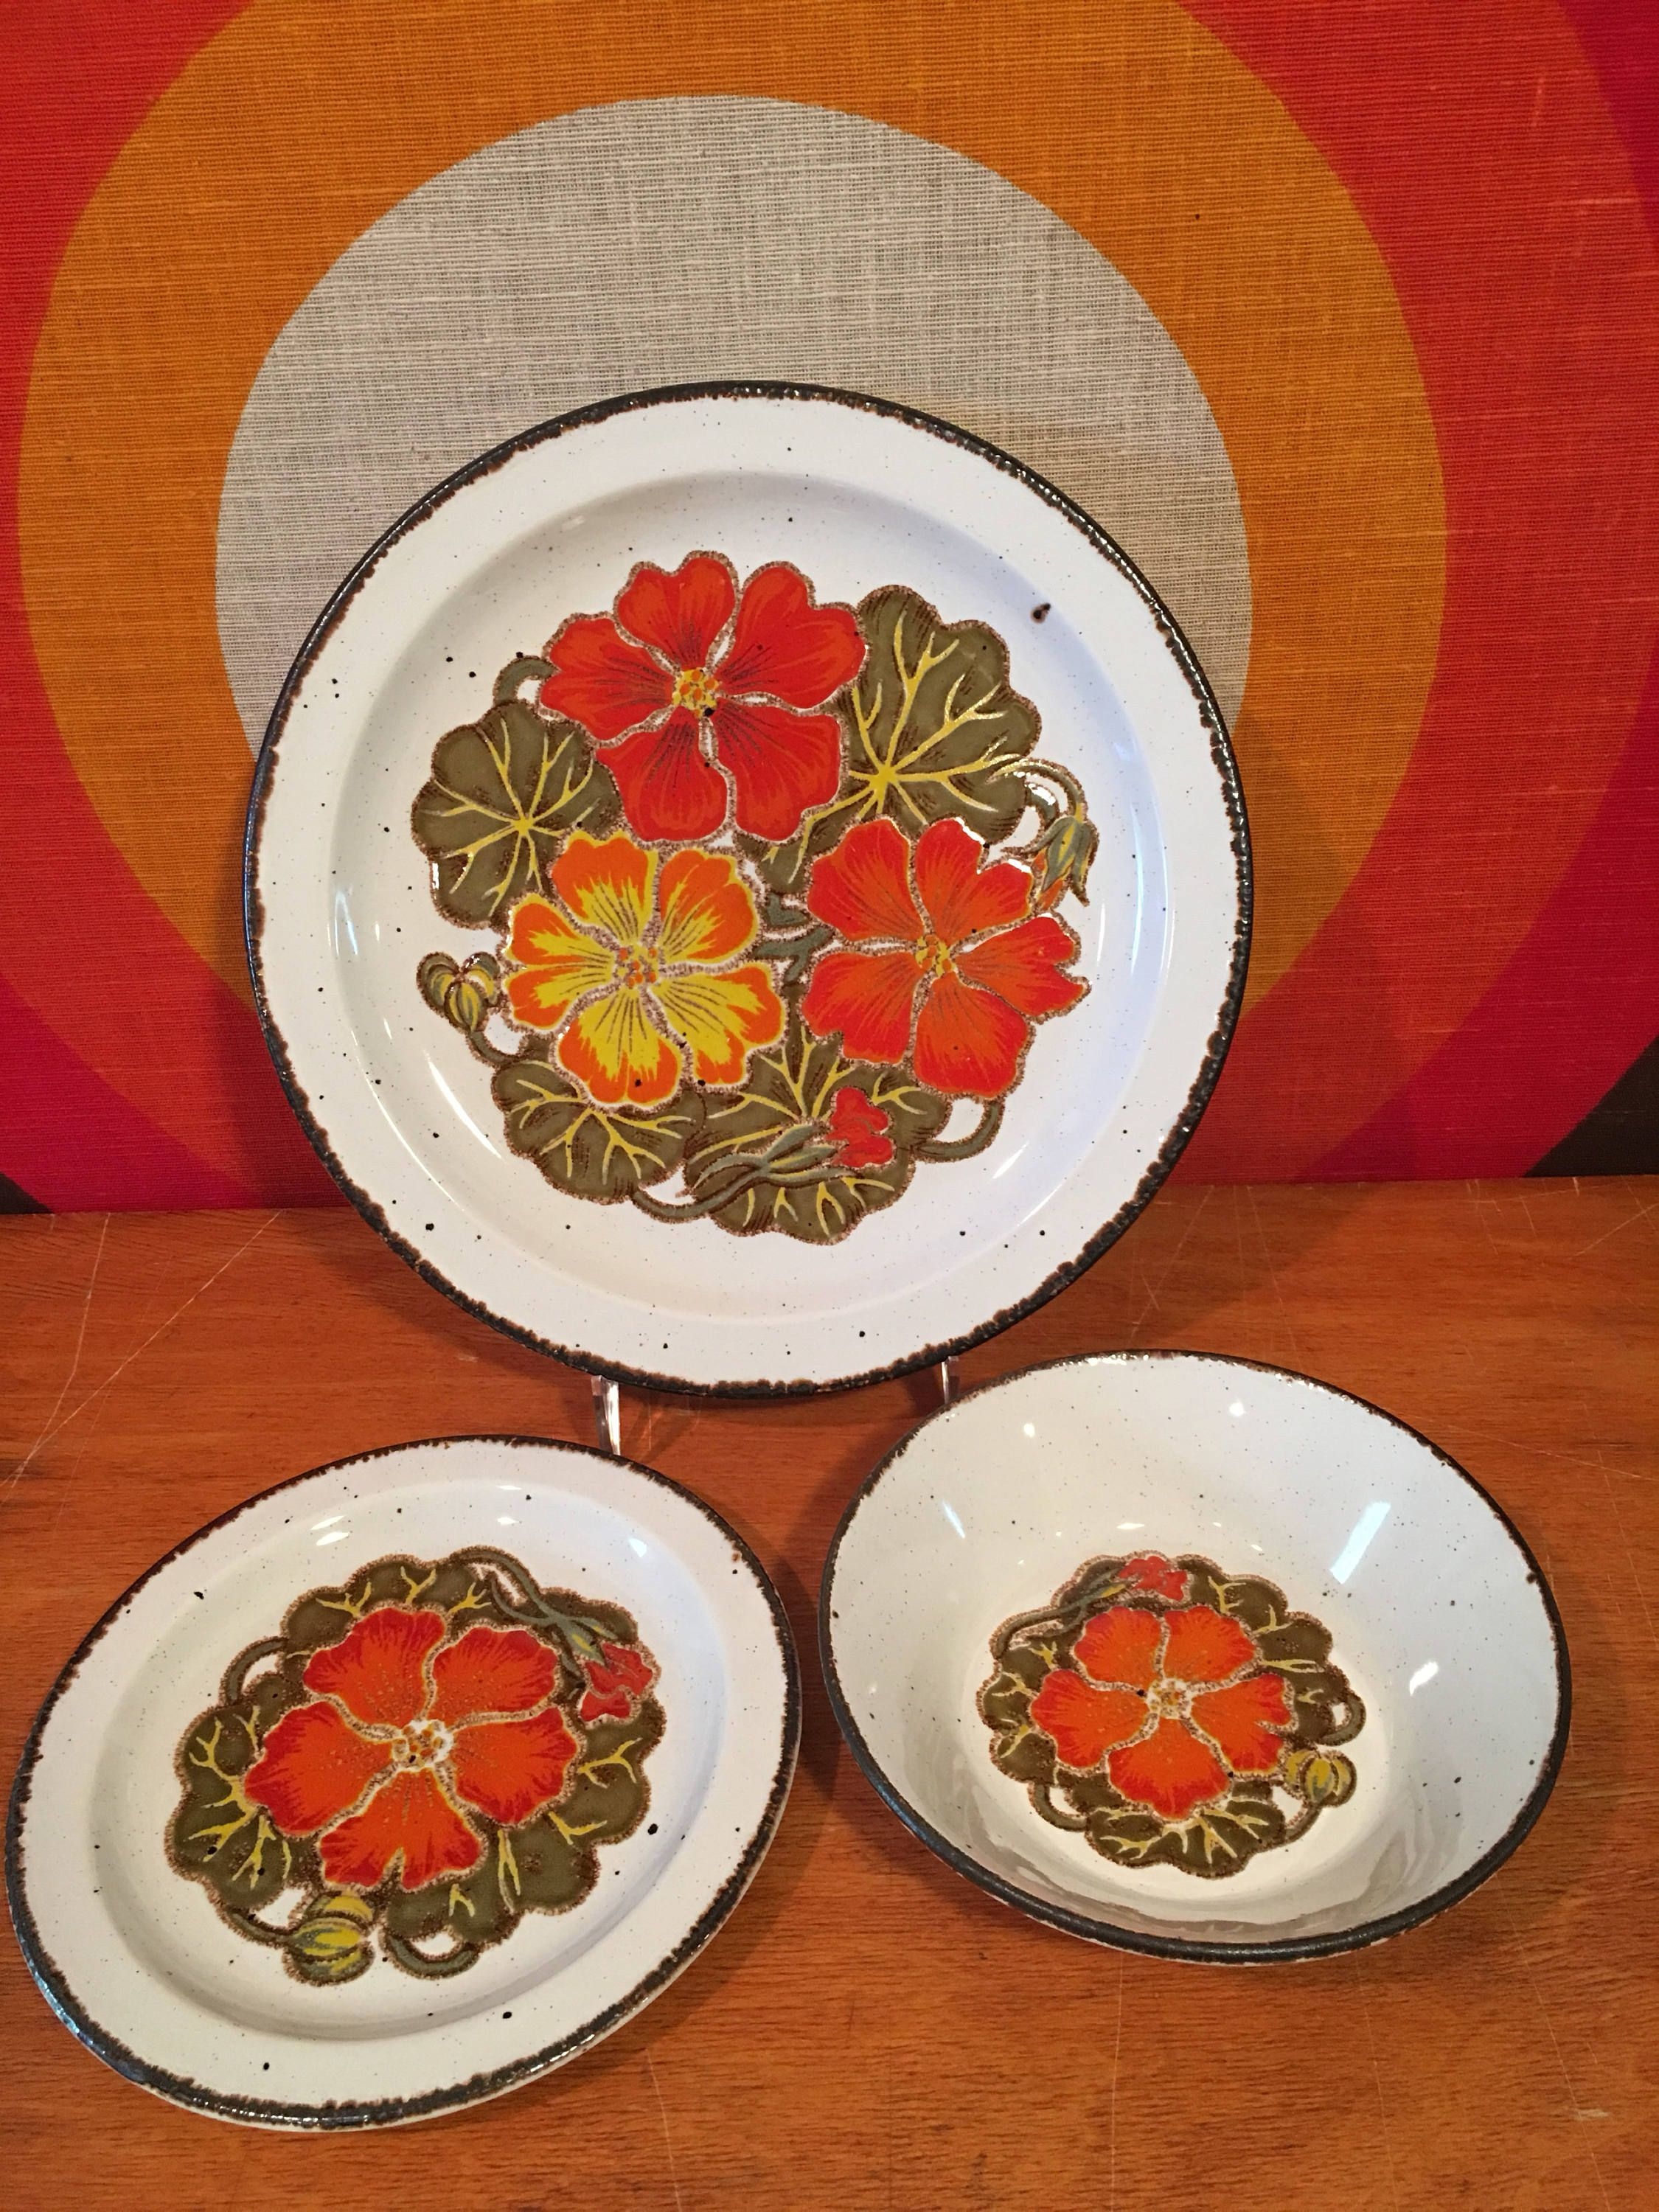 Vintage Midwinter Stonehenge Nasturtium Dinnerware Set 12 pc set Dinner Plates Salad Plates : dinner plates sets of 12 - pezcame.com